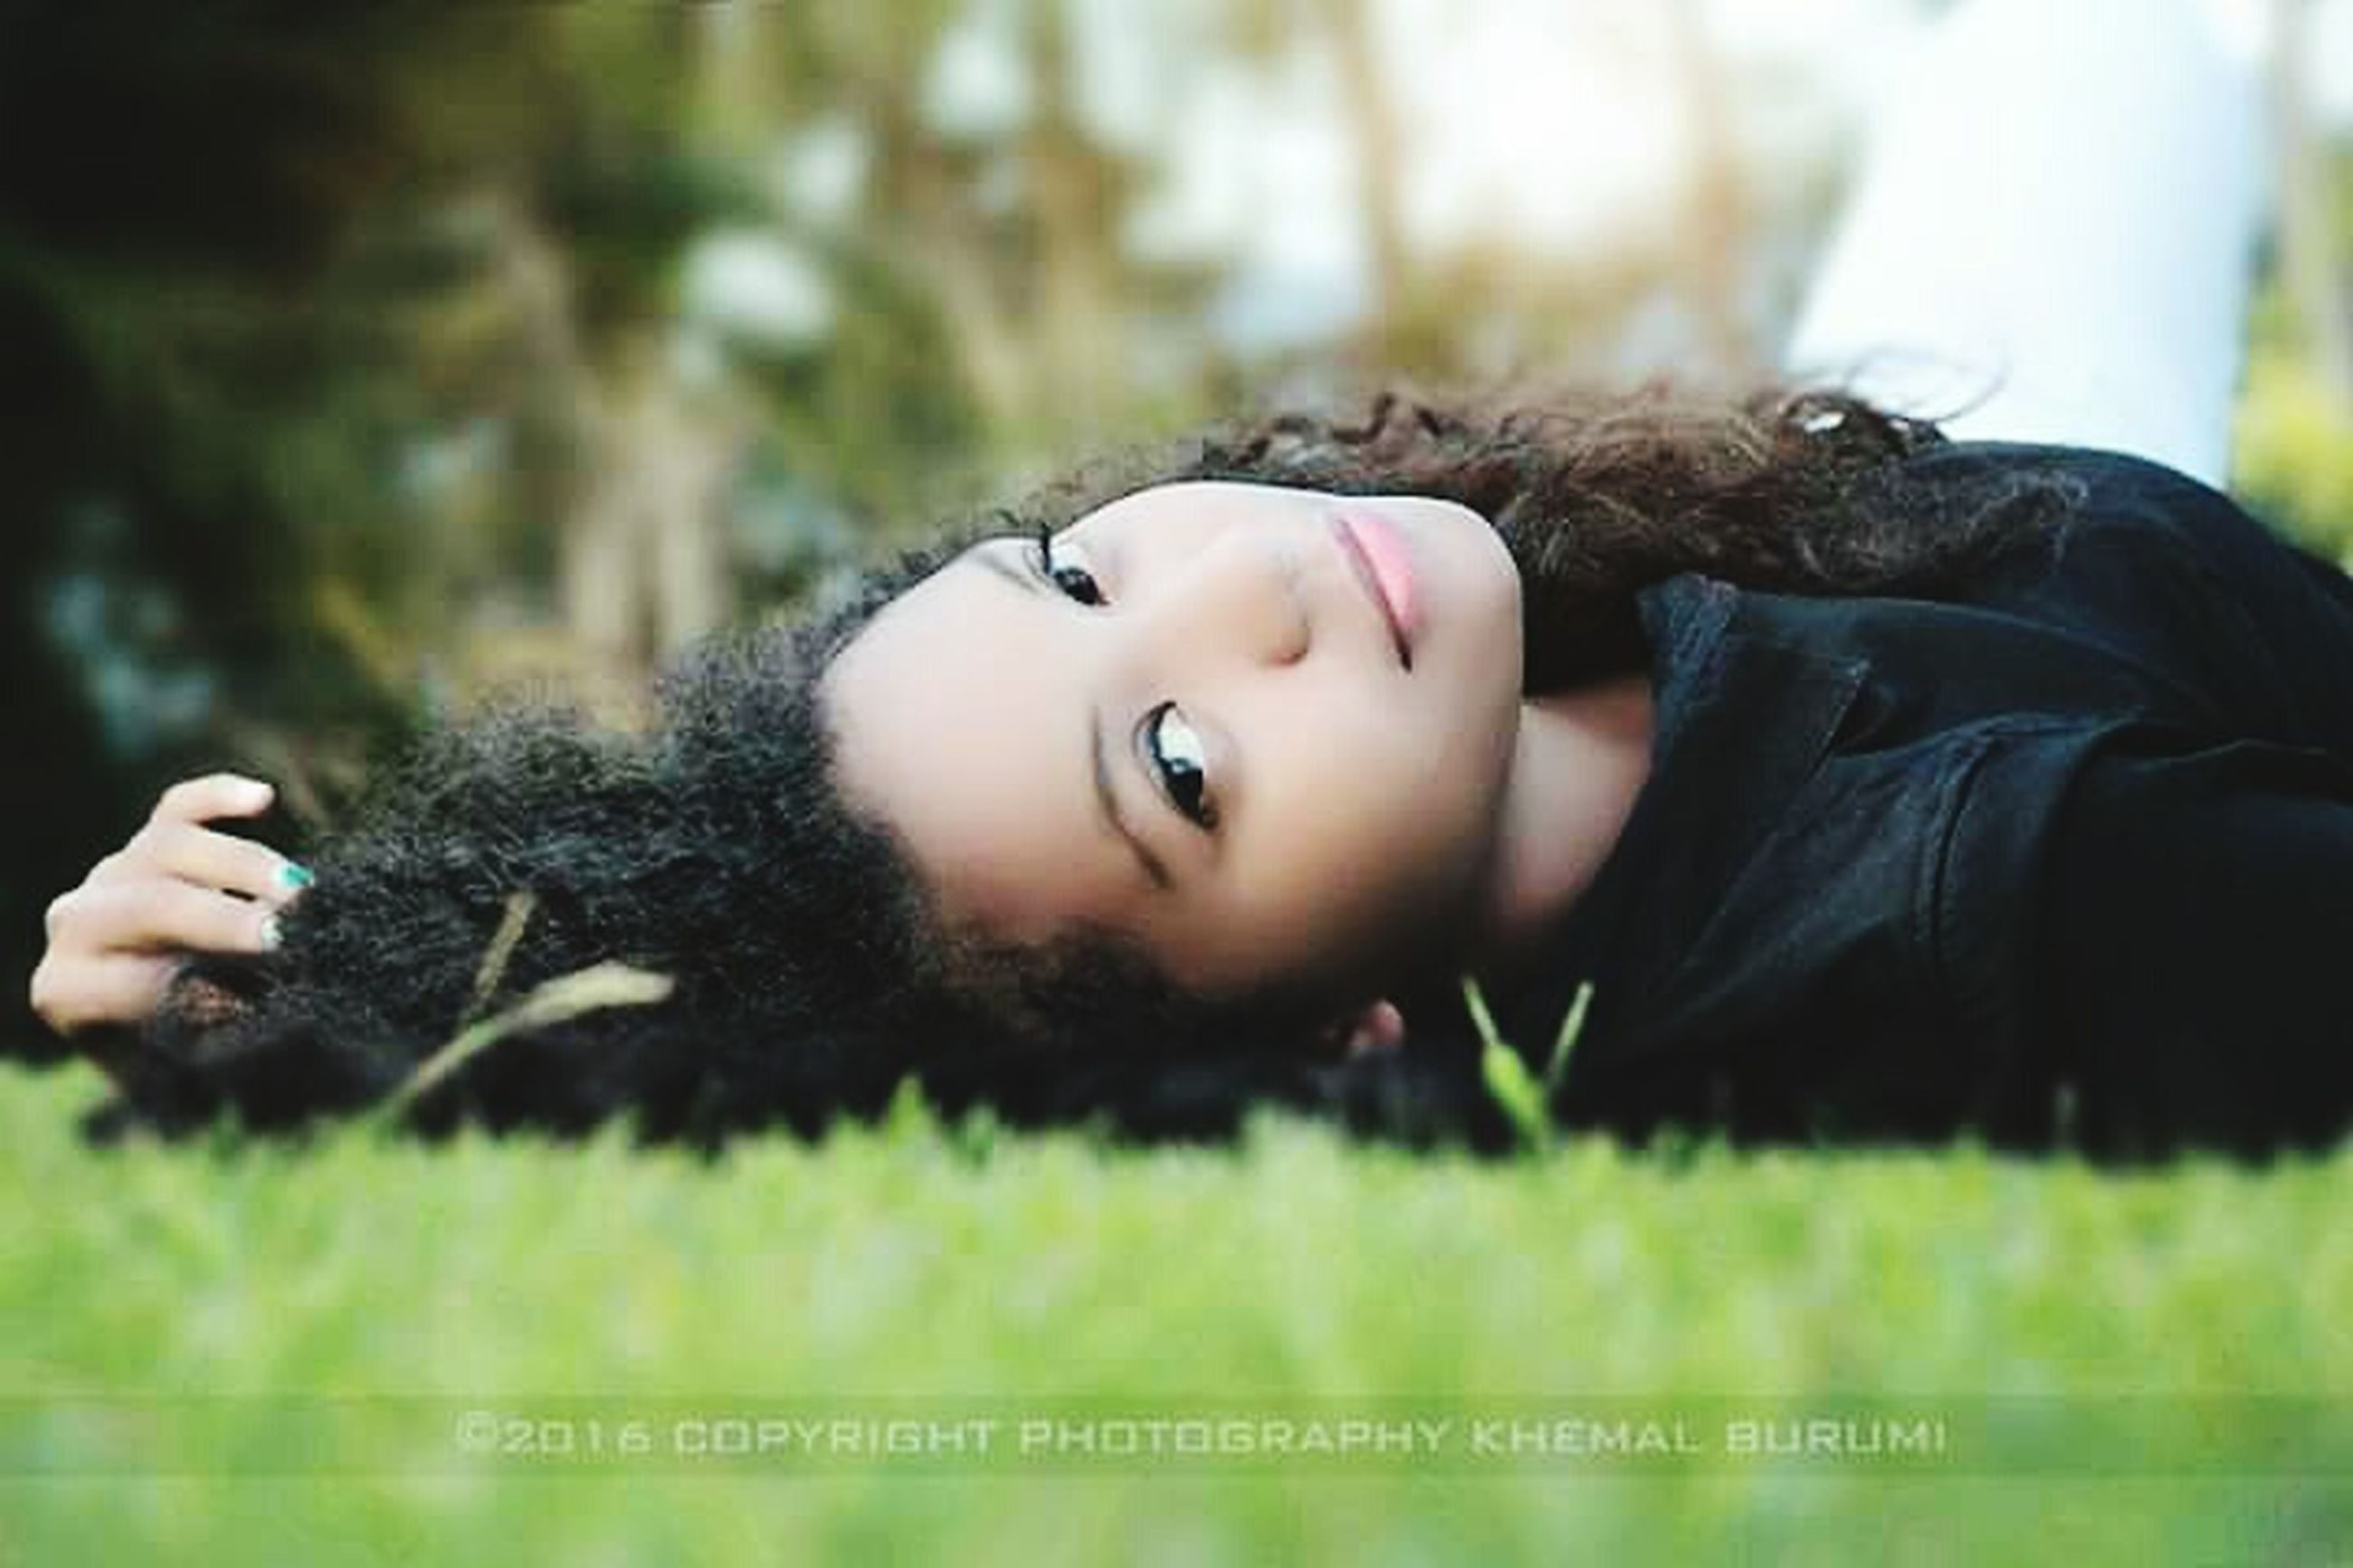 one person, lying down, portrait, child, childhood, looking at camera, plant, relaxation, nature, day, brown hair, offspring, grass, headshot, tree, casual clothing, hair, hairstyle, contemplation, innocence, beautiful woman